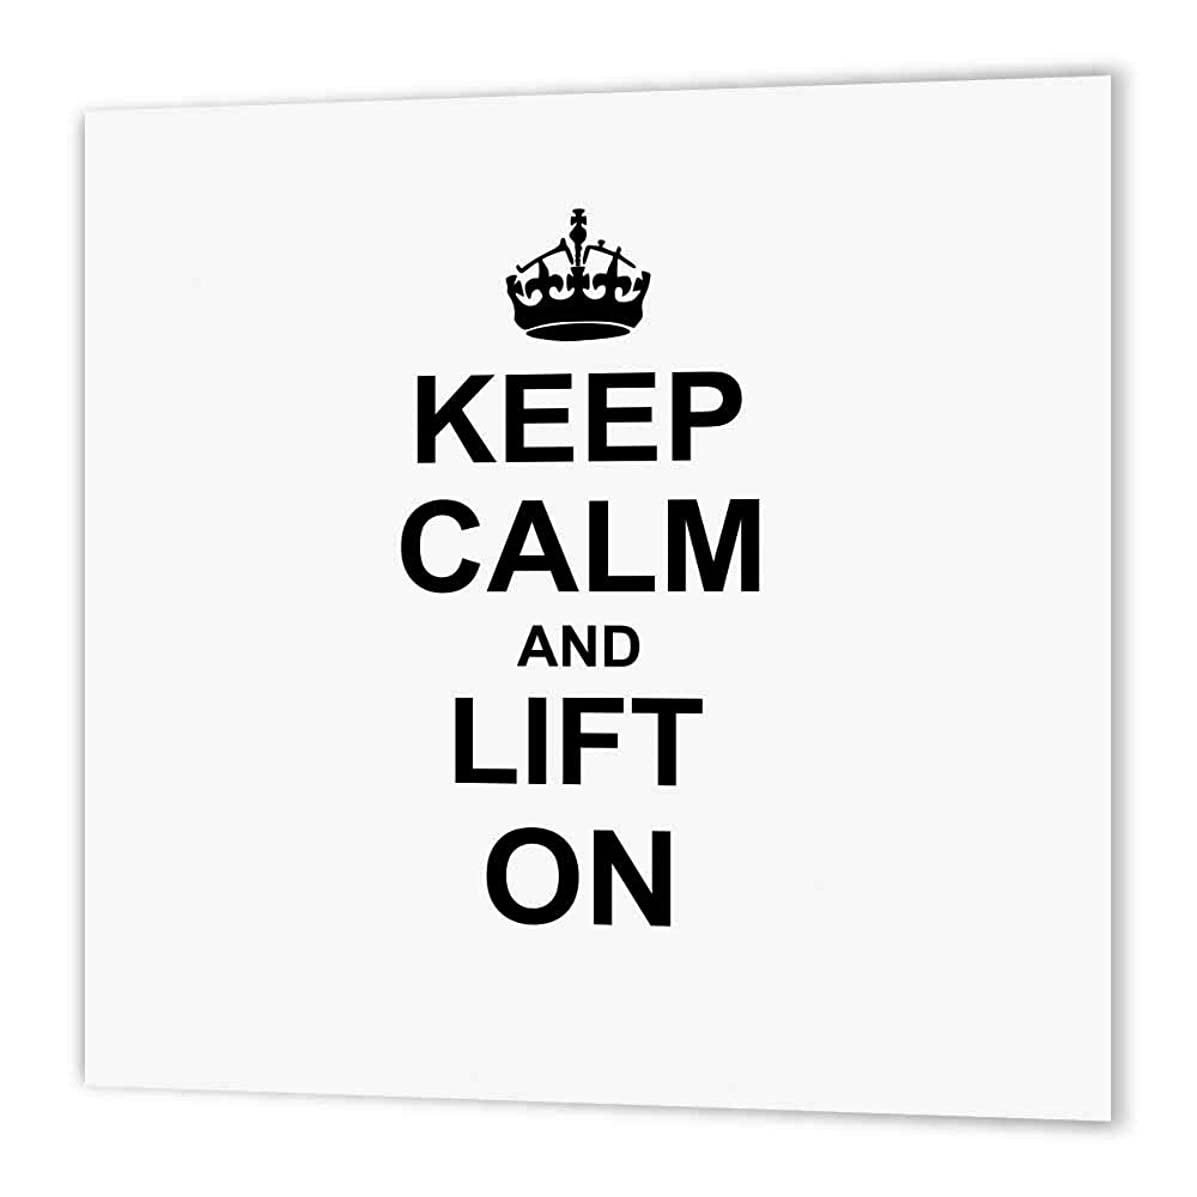 3dRose ht_157785_3 Keep Calm and Lift On-Carry on Weight Lifting-Lifter Gifts-Iron on Heat Transfer Paper for White Material, 10 by 10-Inch